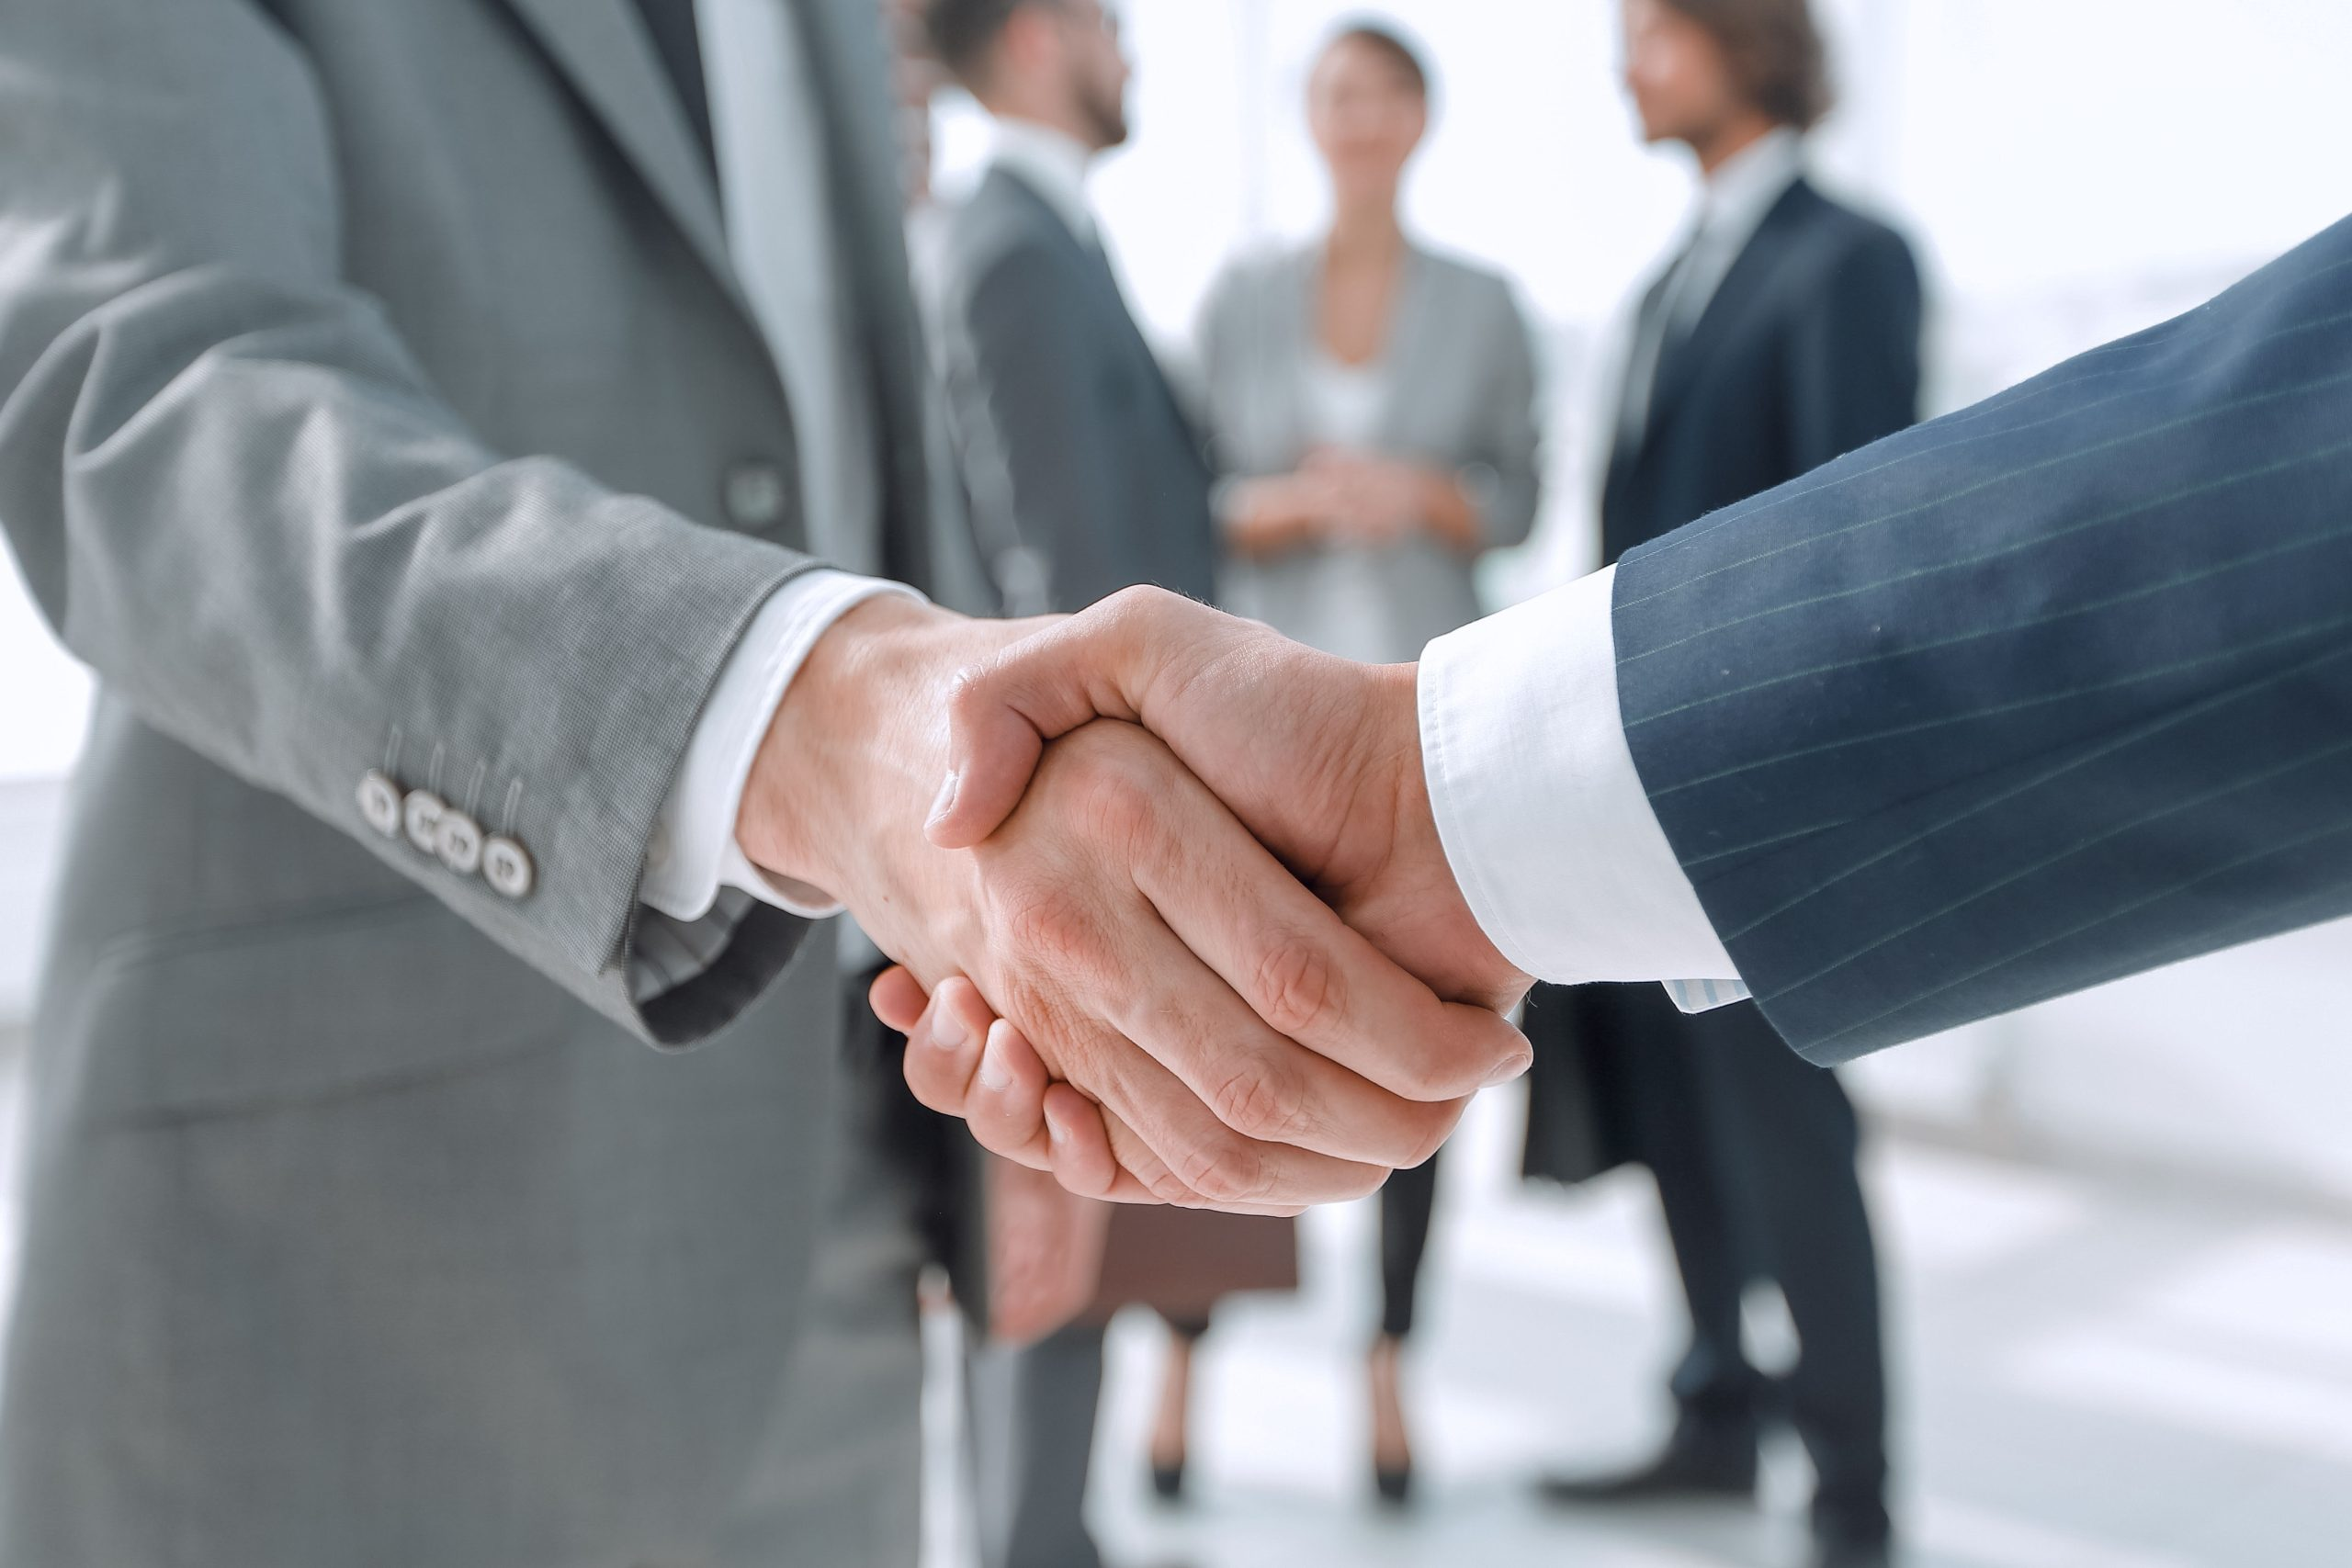 Oncodesign and TiumBio  sign collaboration agreement for R&D of fibrosis drug candidates